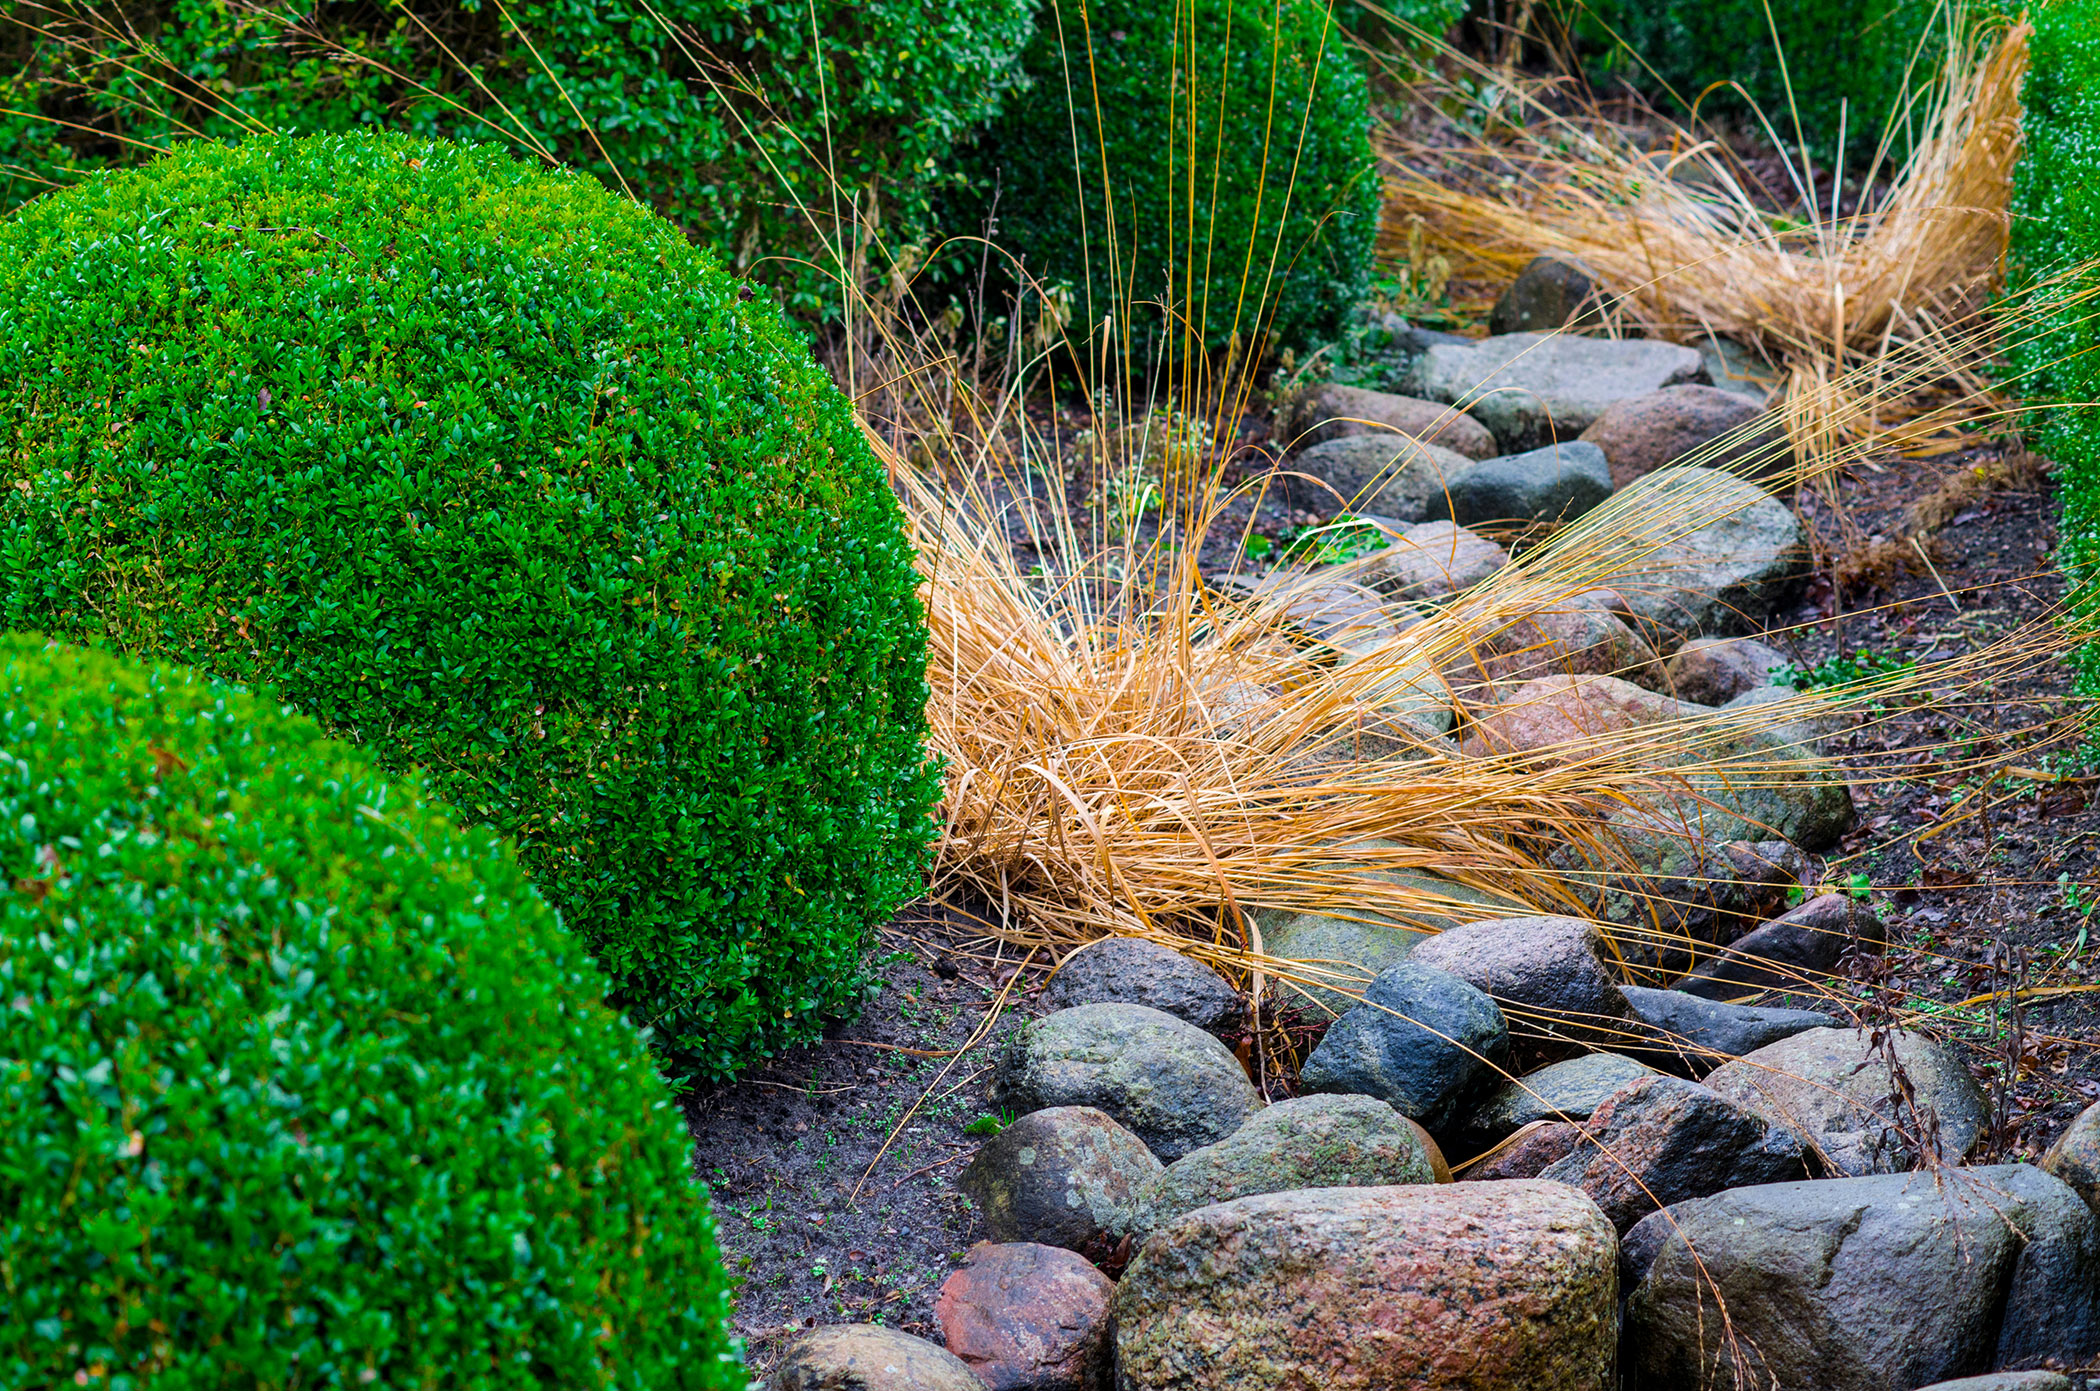 grass and shrubs growing around stones